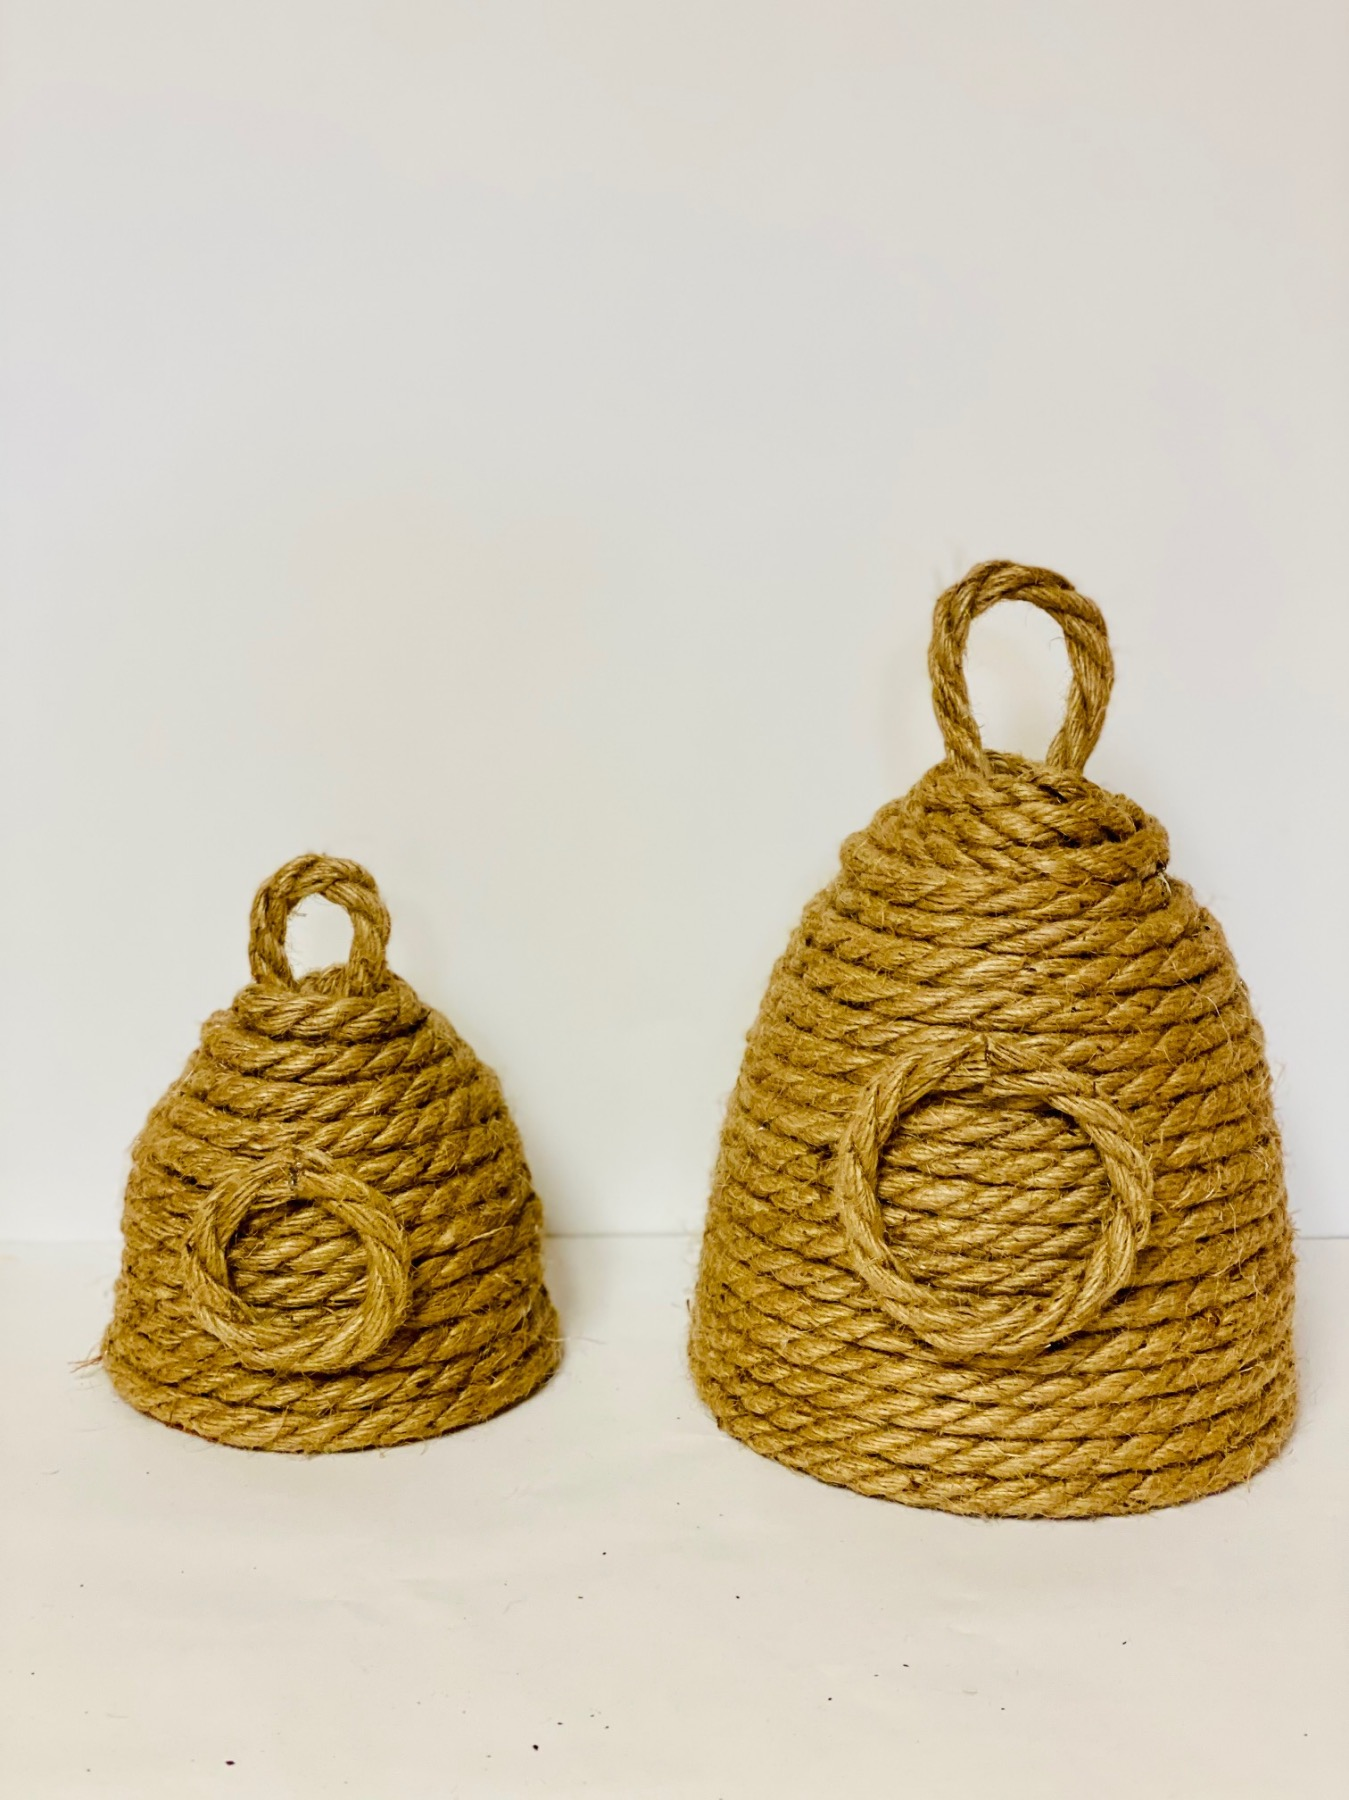 2 finished rope beehives ready to paint